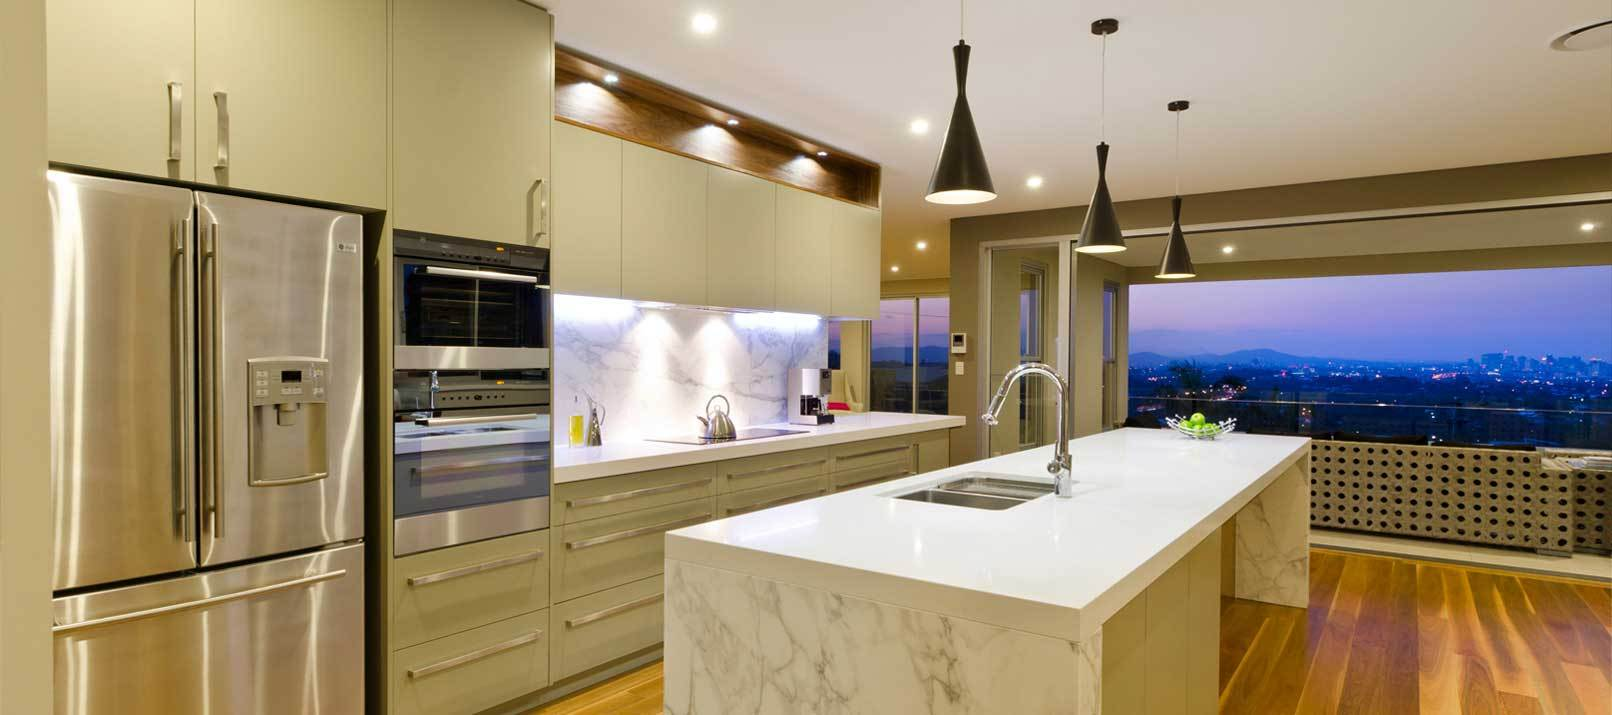 How To Effectively Plan Your New Kitchen Designer Kitchens